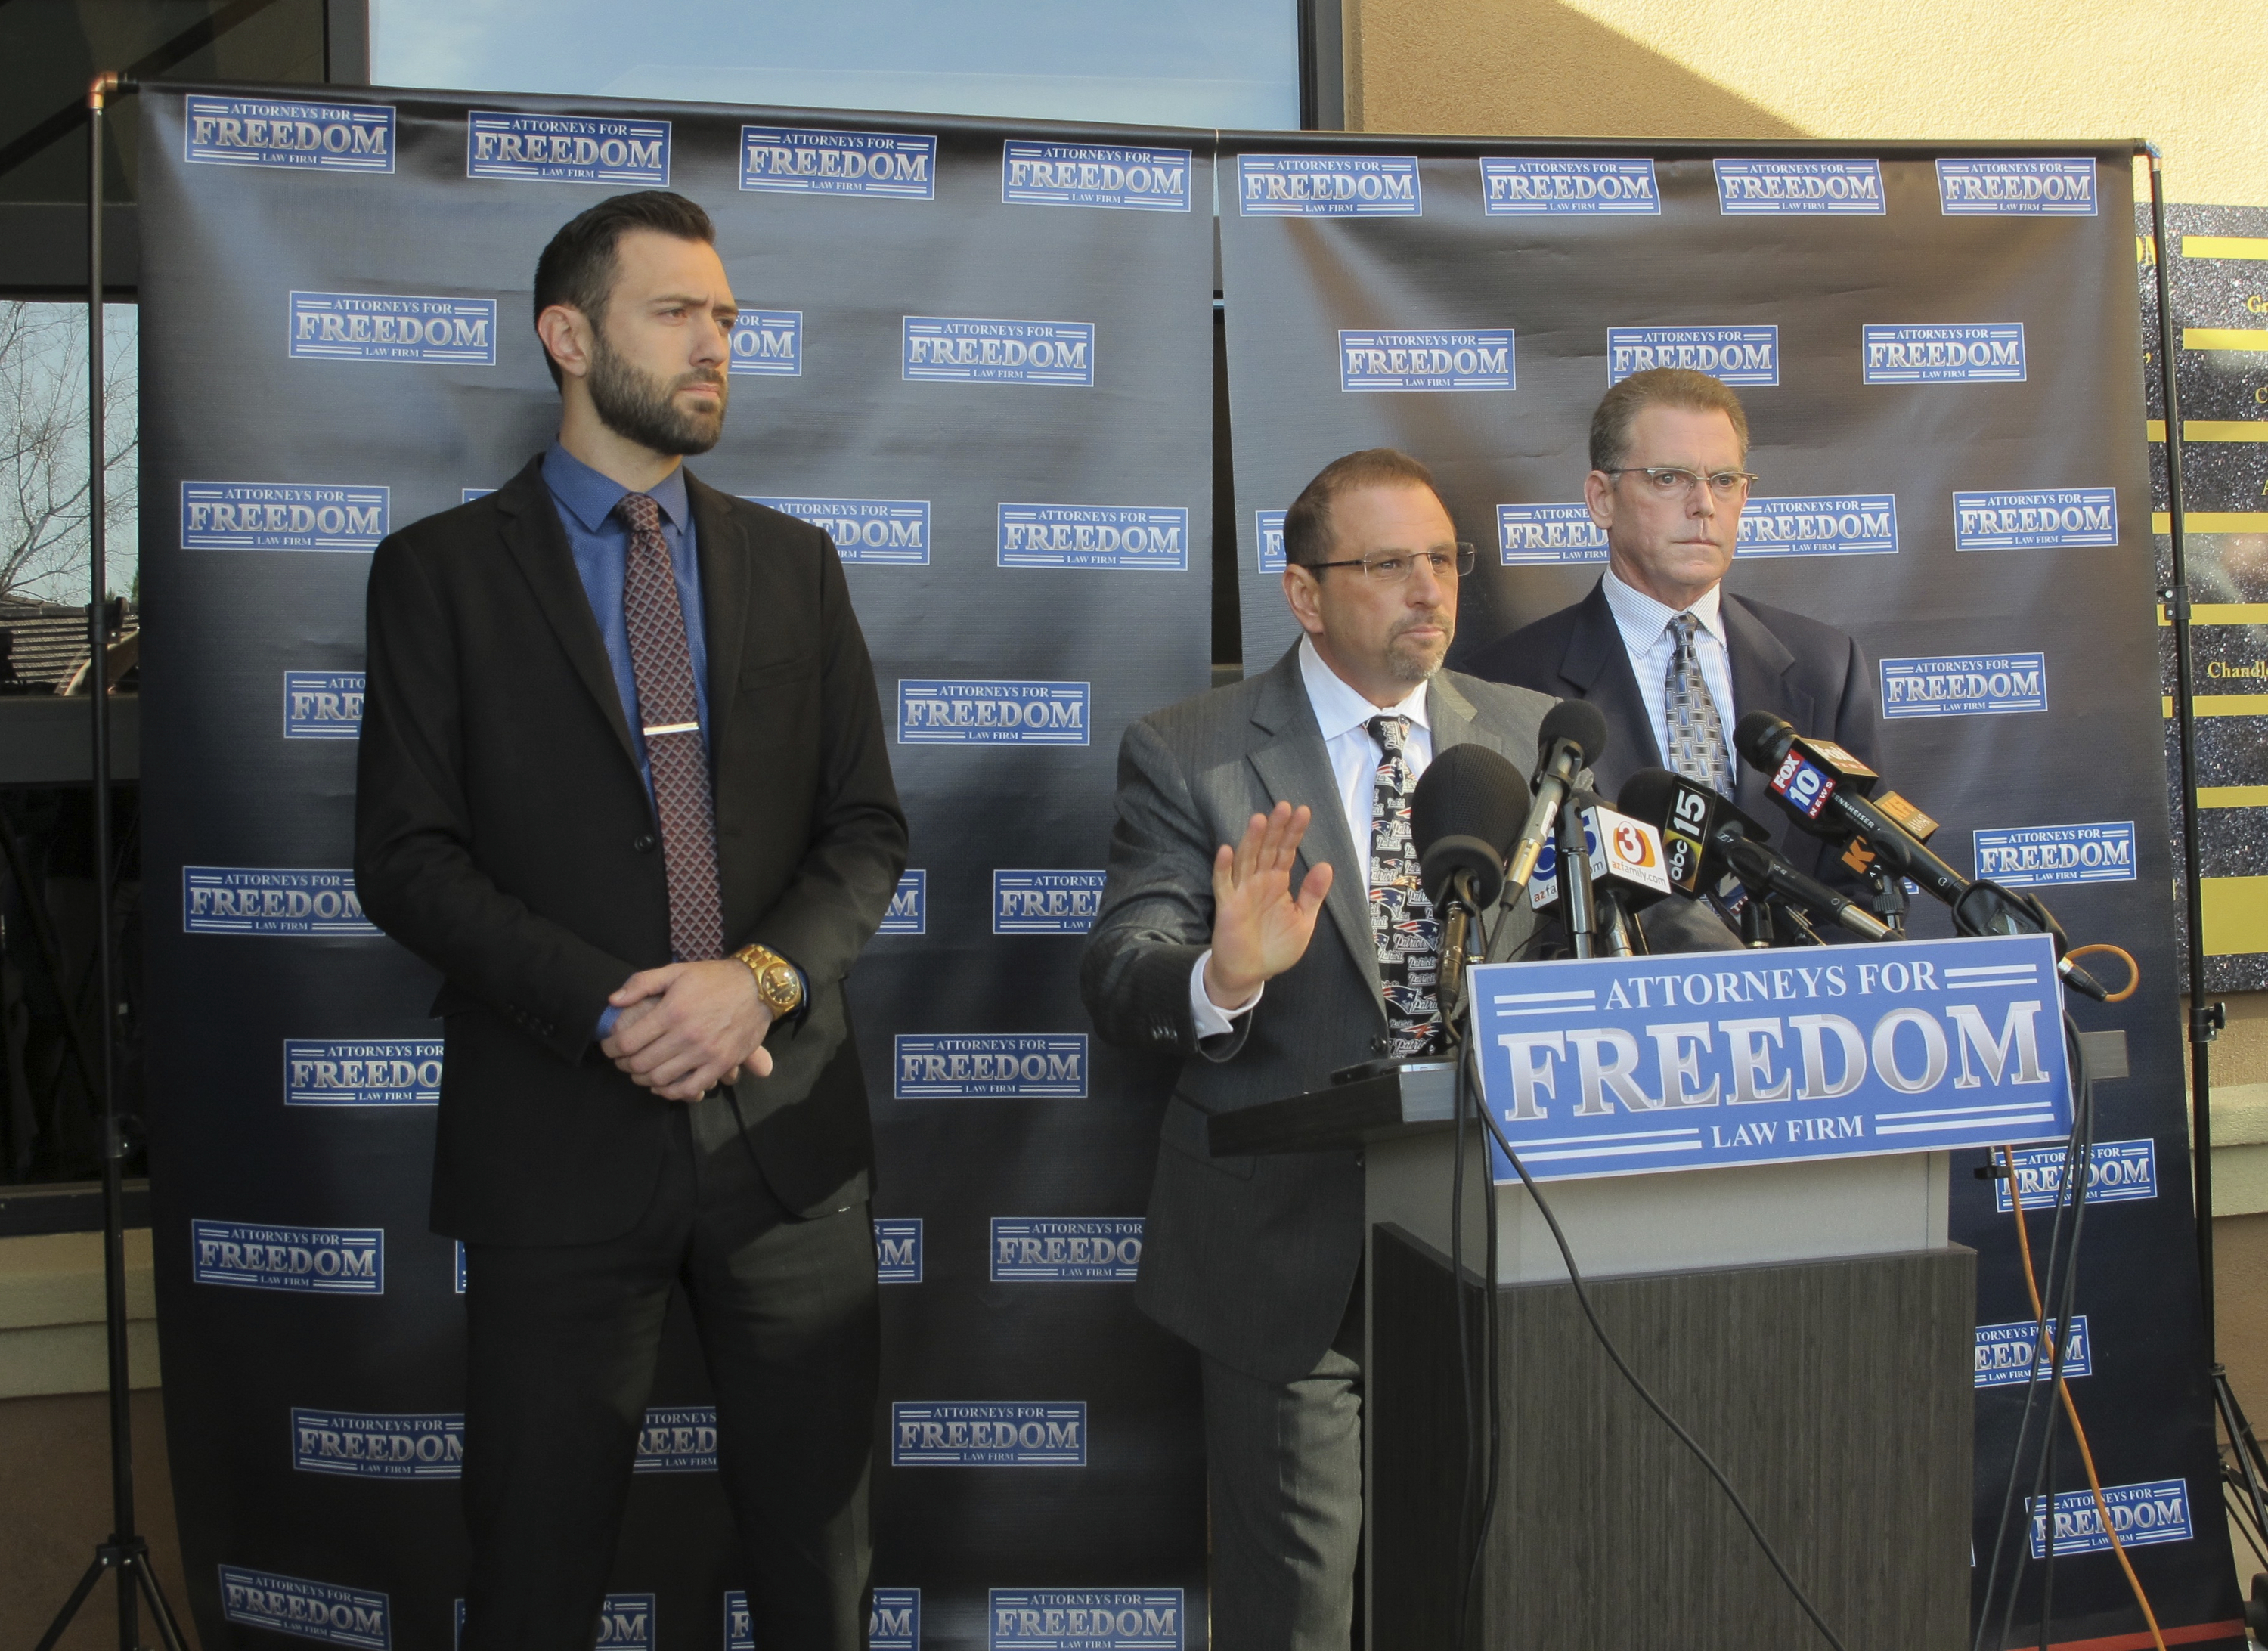 Criminal defense lawyers, Andrew Marcantel, left, and Marc Victor, middle, stand with their client, Douglas Haig, right, at a news conference in Chandler, Ariz., Friday, Feb. 2, 2018. Haig, a 55-year-old aerospace engineer who sold ammunition as a hobby for about 25 years, said he met Stephen Paddock at a Phoenix gun show in the weeks before the Oct. 1 shooting in Las Vegas that killed 58 people and injured hundreds more. Haig said he was shocked and sickened when a federal agent informed him of the massacre 11 hours after it unfolded. It's unknown whether the ammunition he sold to Paddock was used in the attack. (AP Photo/Brian Skoloff)